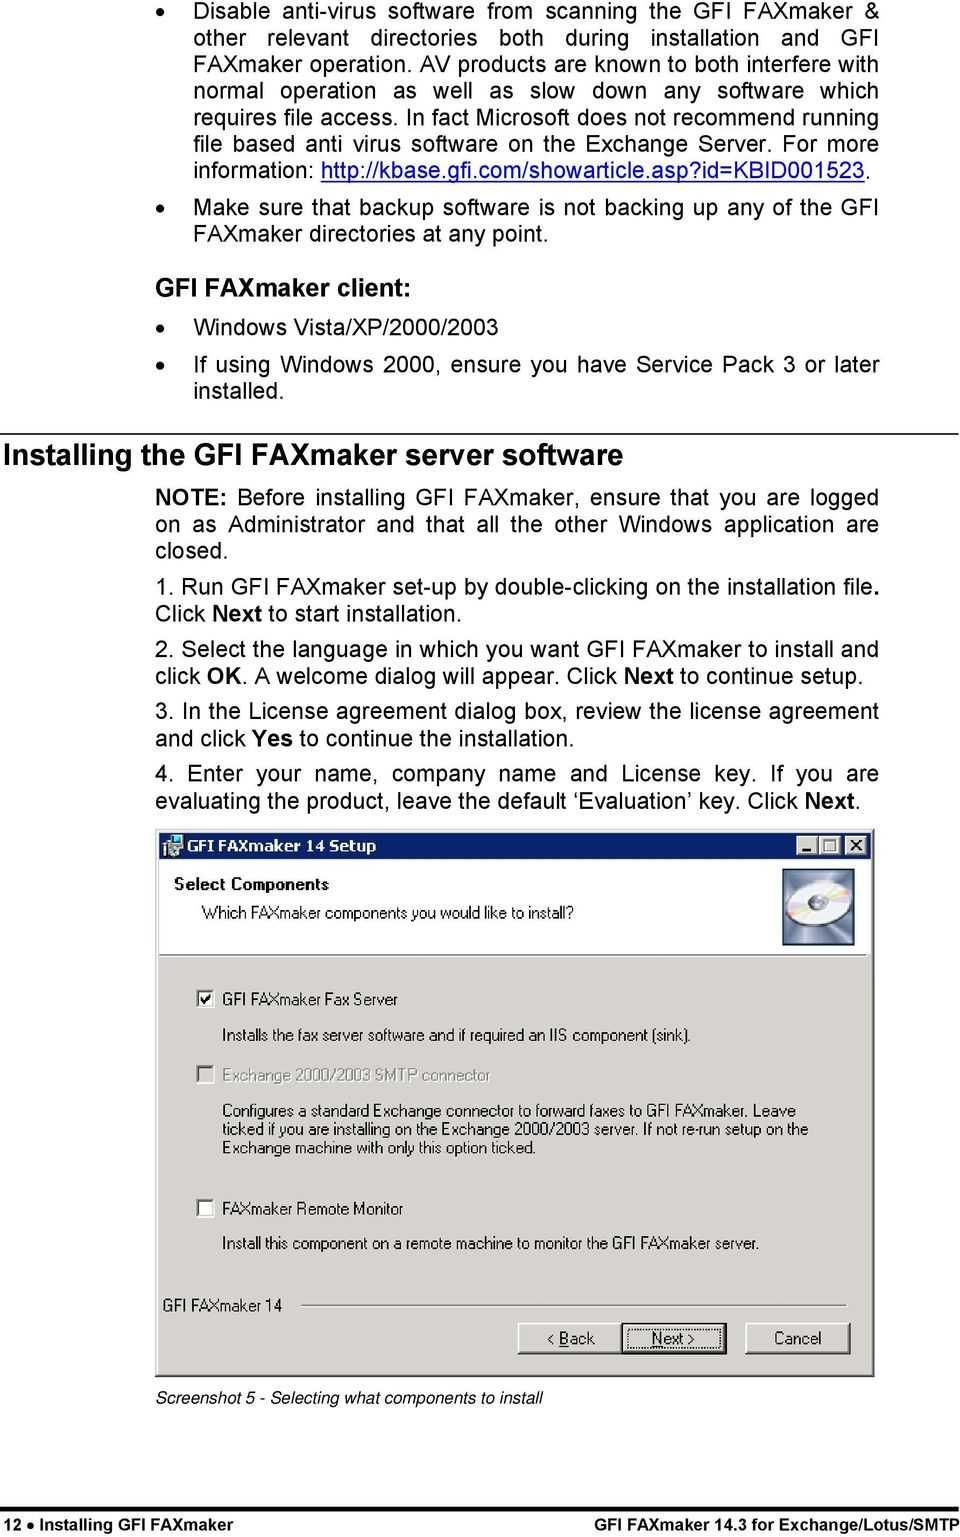 In fact Microsoft does not recommend running file based anti virus software on the Exchange Server. For more information: http://kbase.gfi.com/showarticle.asp?id=kbid001523.